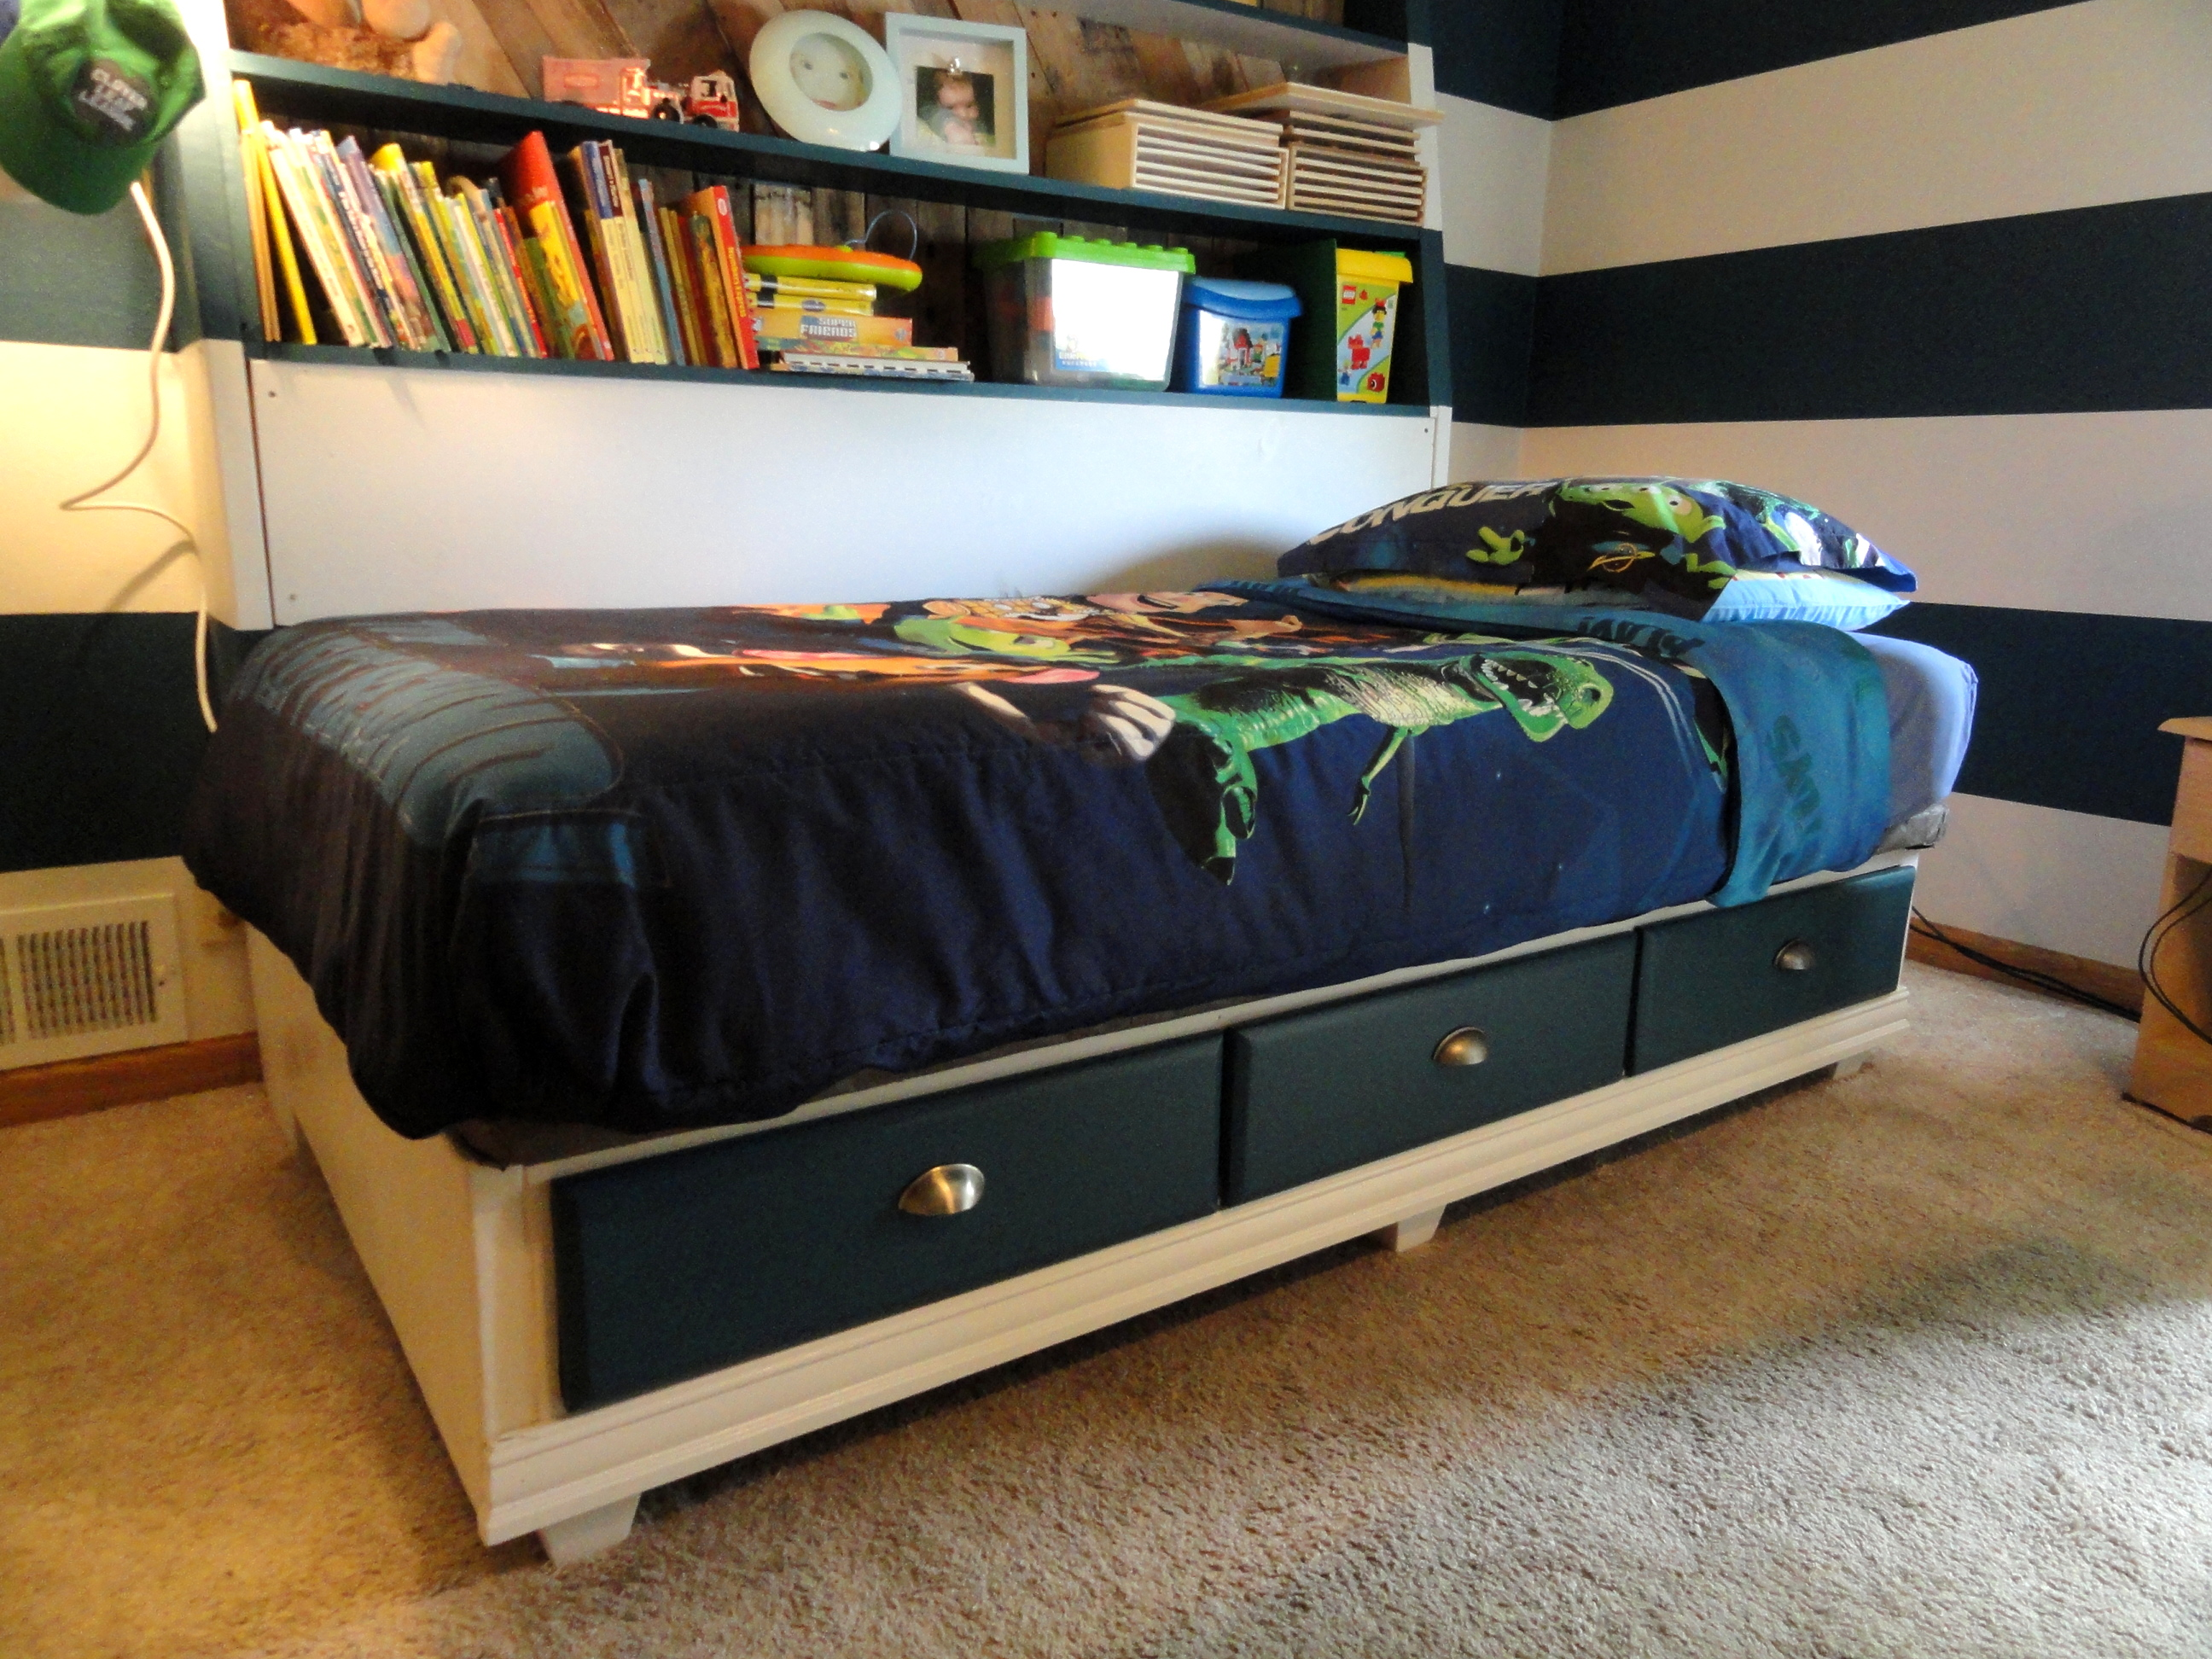 Bed Frame Ideas On Pinterest Waterbed Bed Frame And Diy Bed Frame